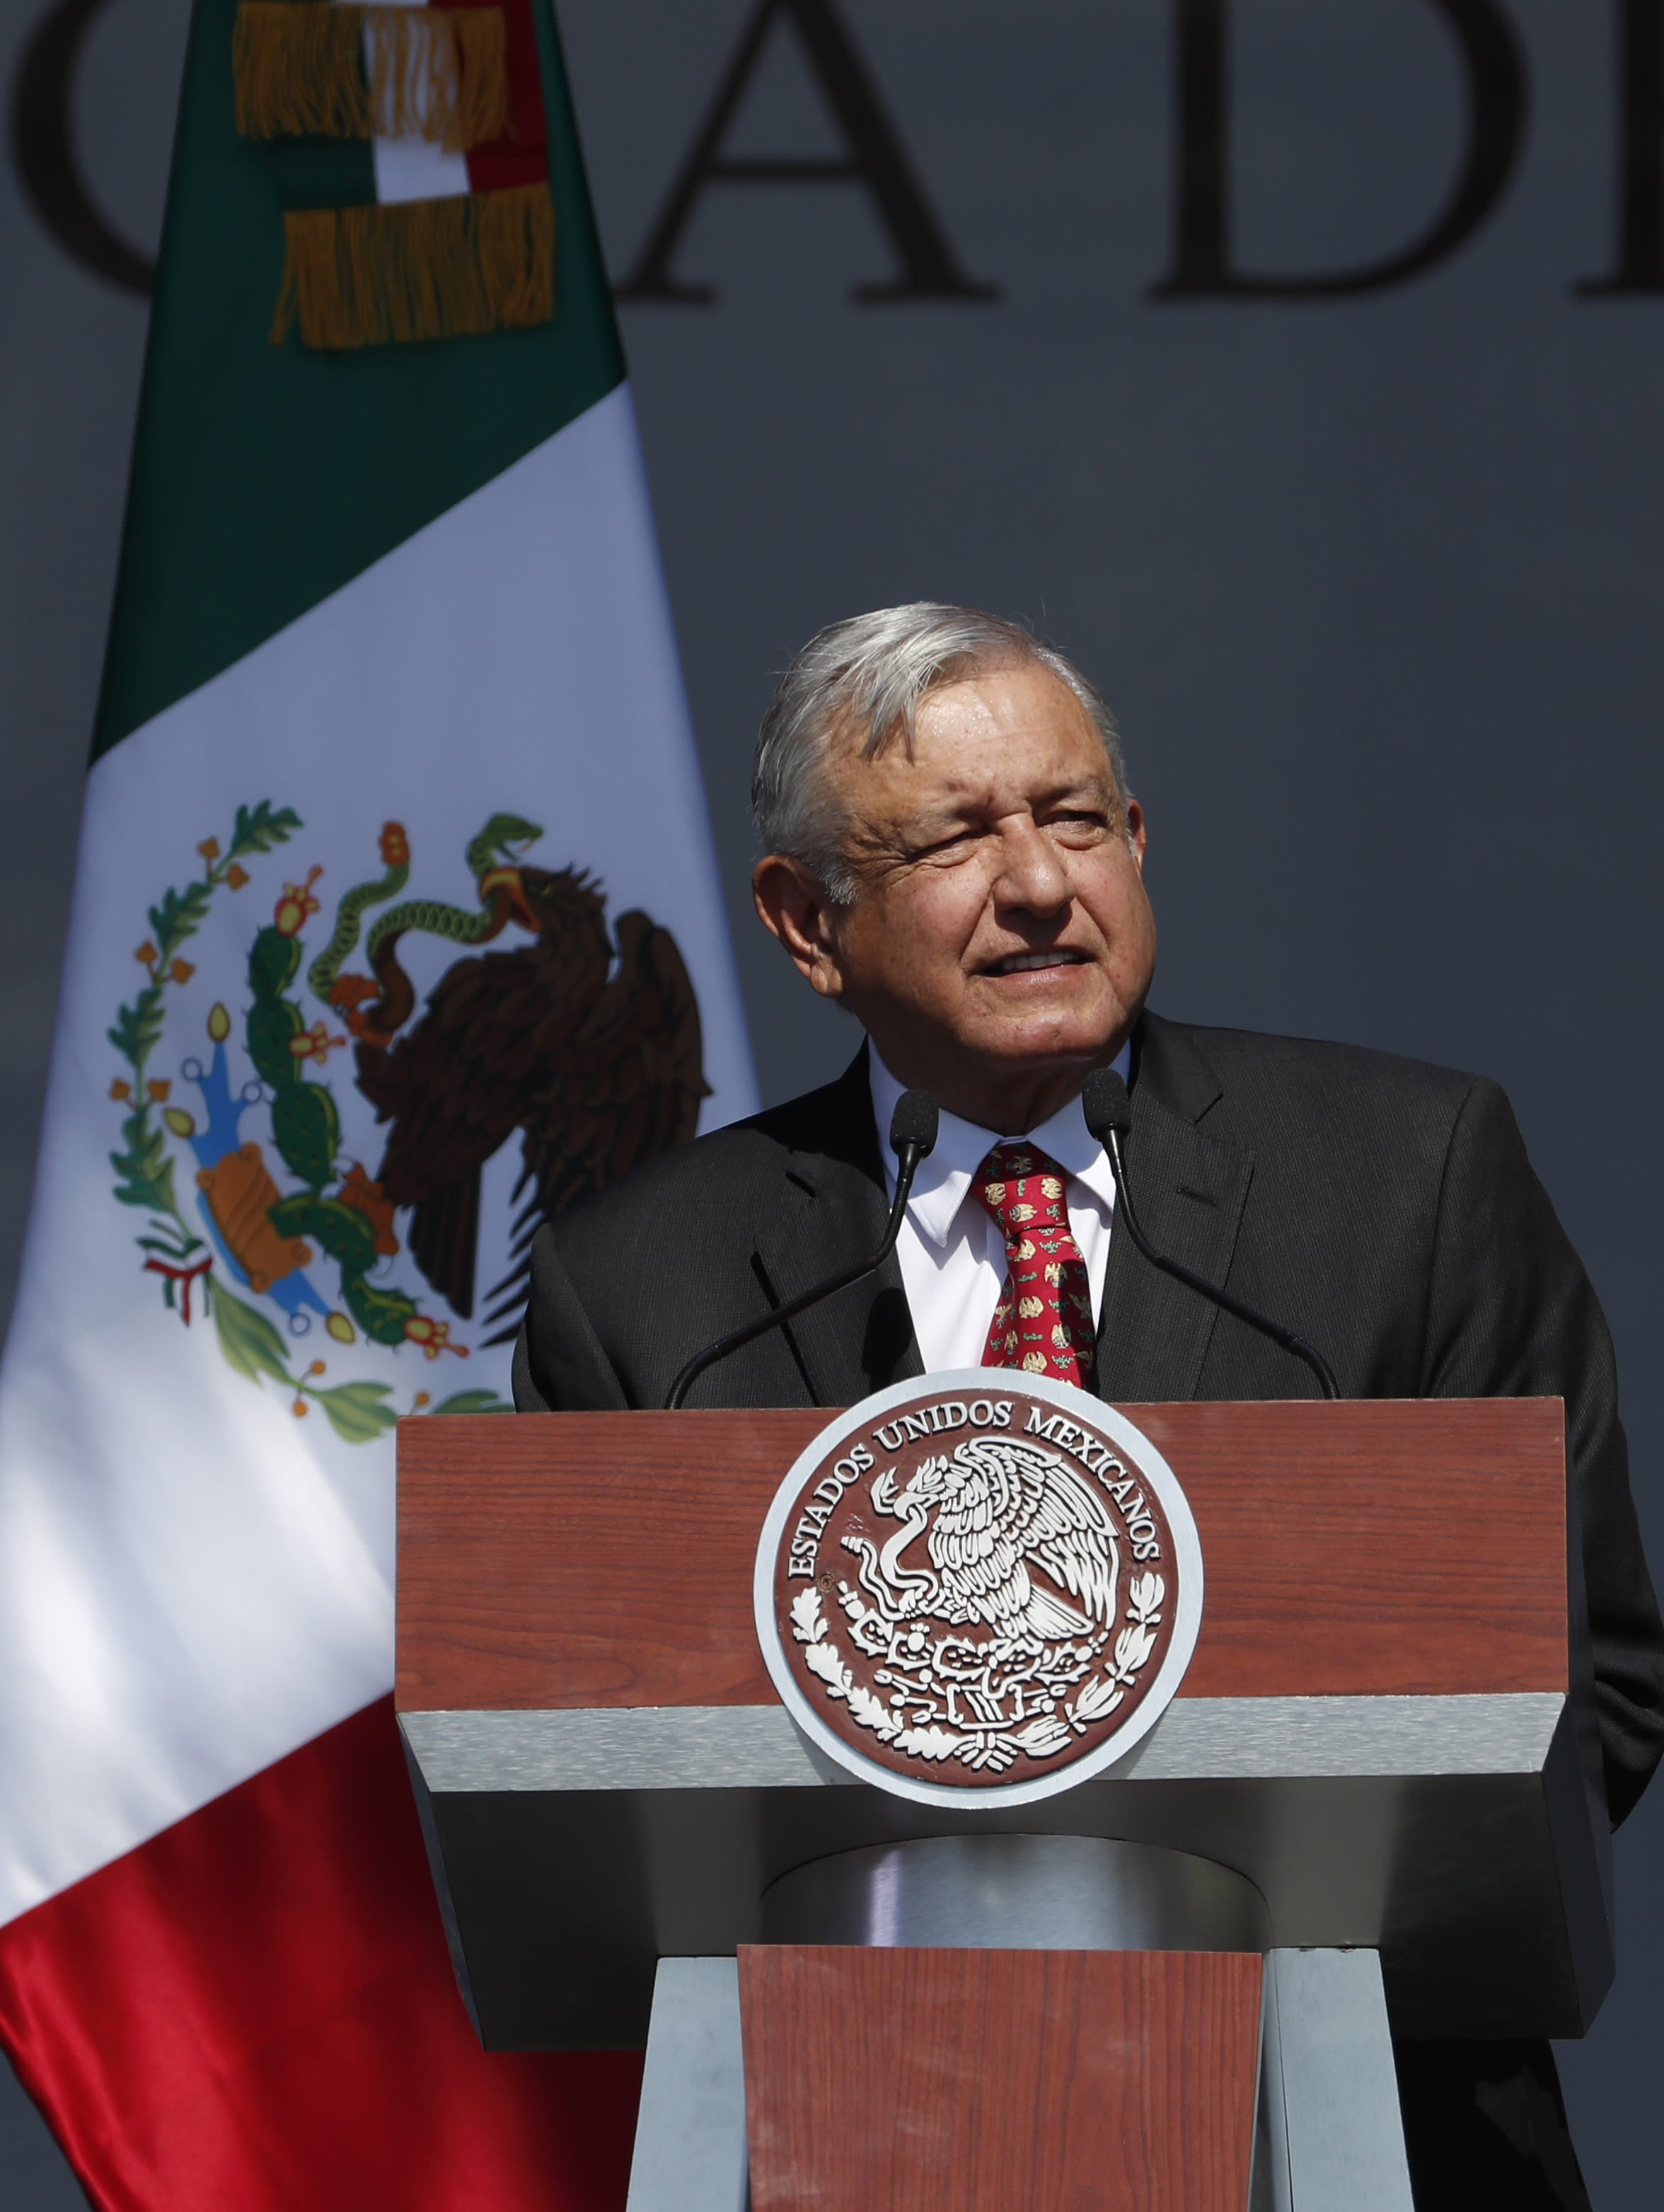 Mexico's President Andres Manuel Lopez Obrador speaks during rally to commemorate his one year anniversary in office, at the capital's main plaza, the Zocalo, in Mexico City, Sunday, December 1, 2019. Thousands of Mexicans have packed into the capital's central square to celebrate Lopez Obrador's first year in office, while thousands more marched down the city's main avenue to protest violence and other ills in the country. (AP Photo/Marco Ugarte)